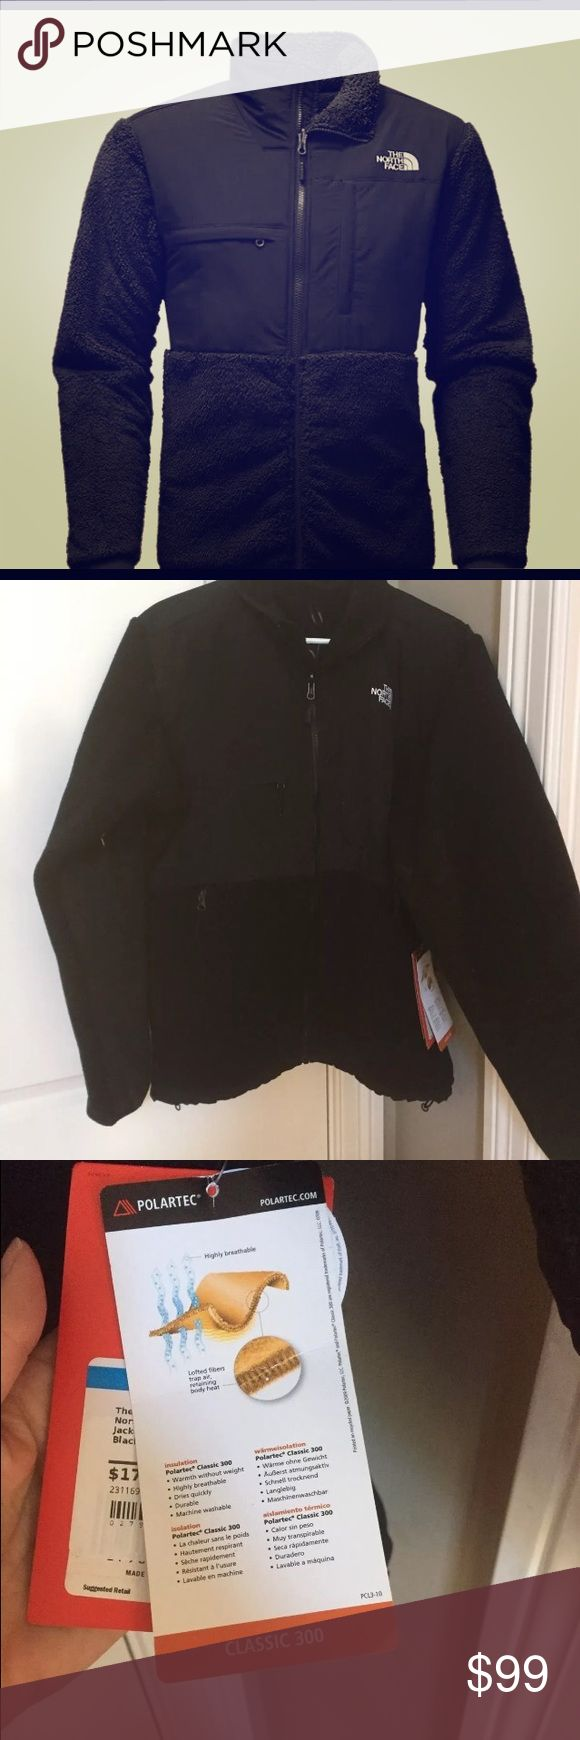 NWT north face men's Denali fleece jacket coat XL Color is black, and size is men's XL. Brand new with tags :) North Face Jackets & Coats